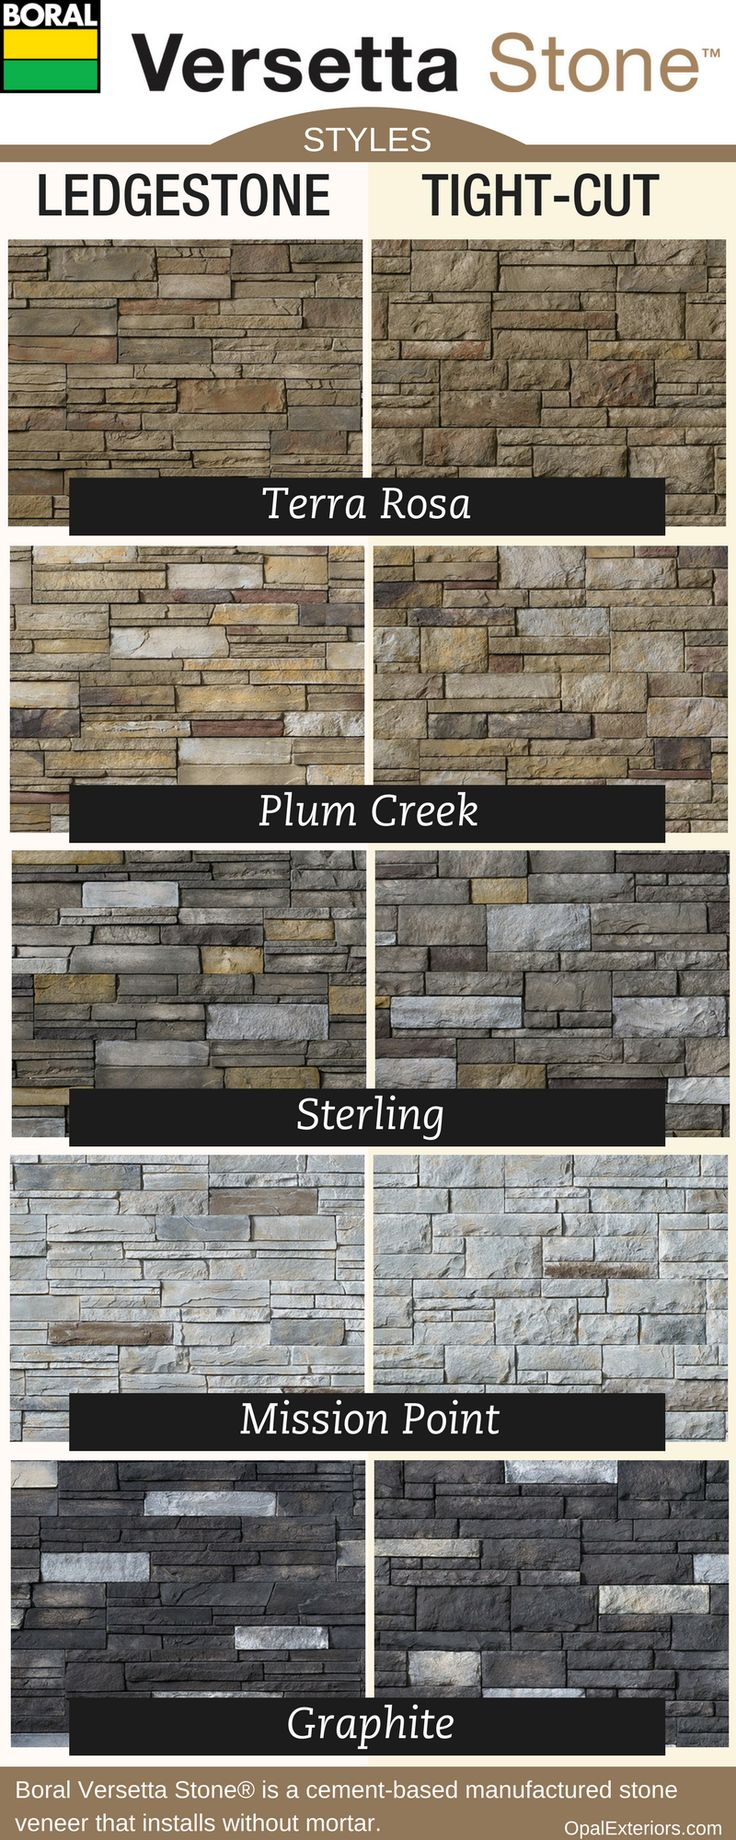 Boral Versetta Stone® styles and colors.